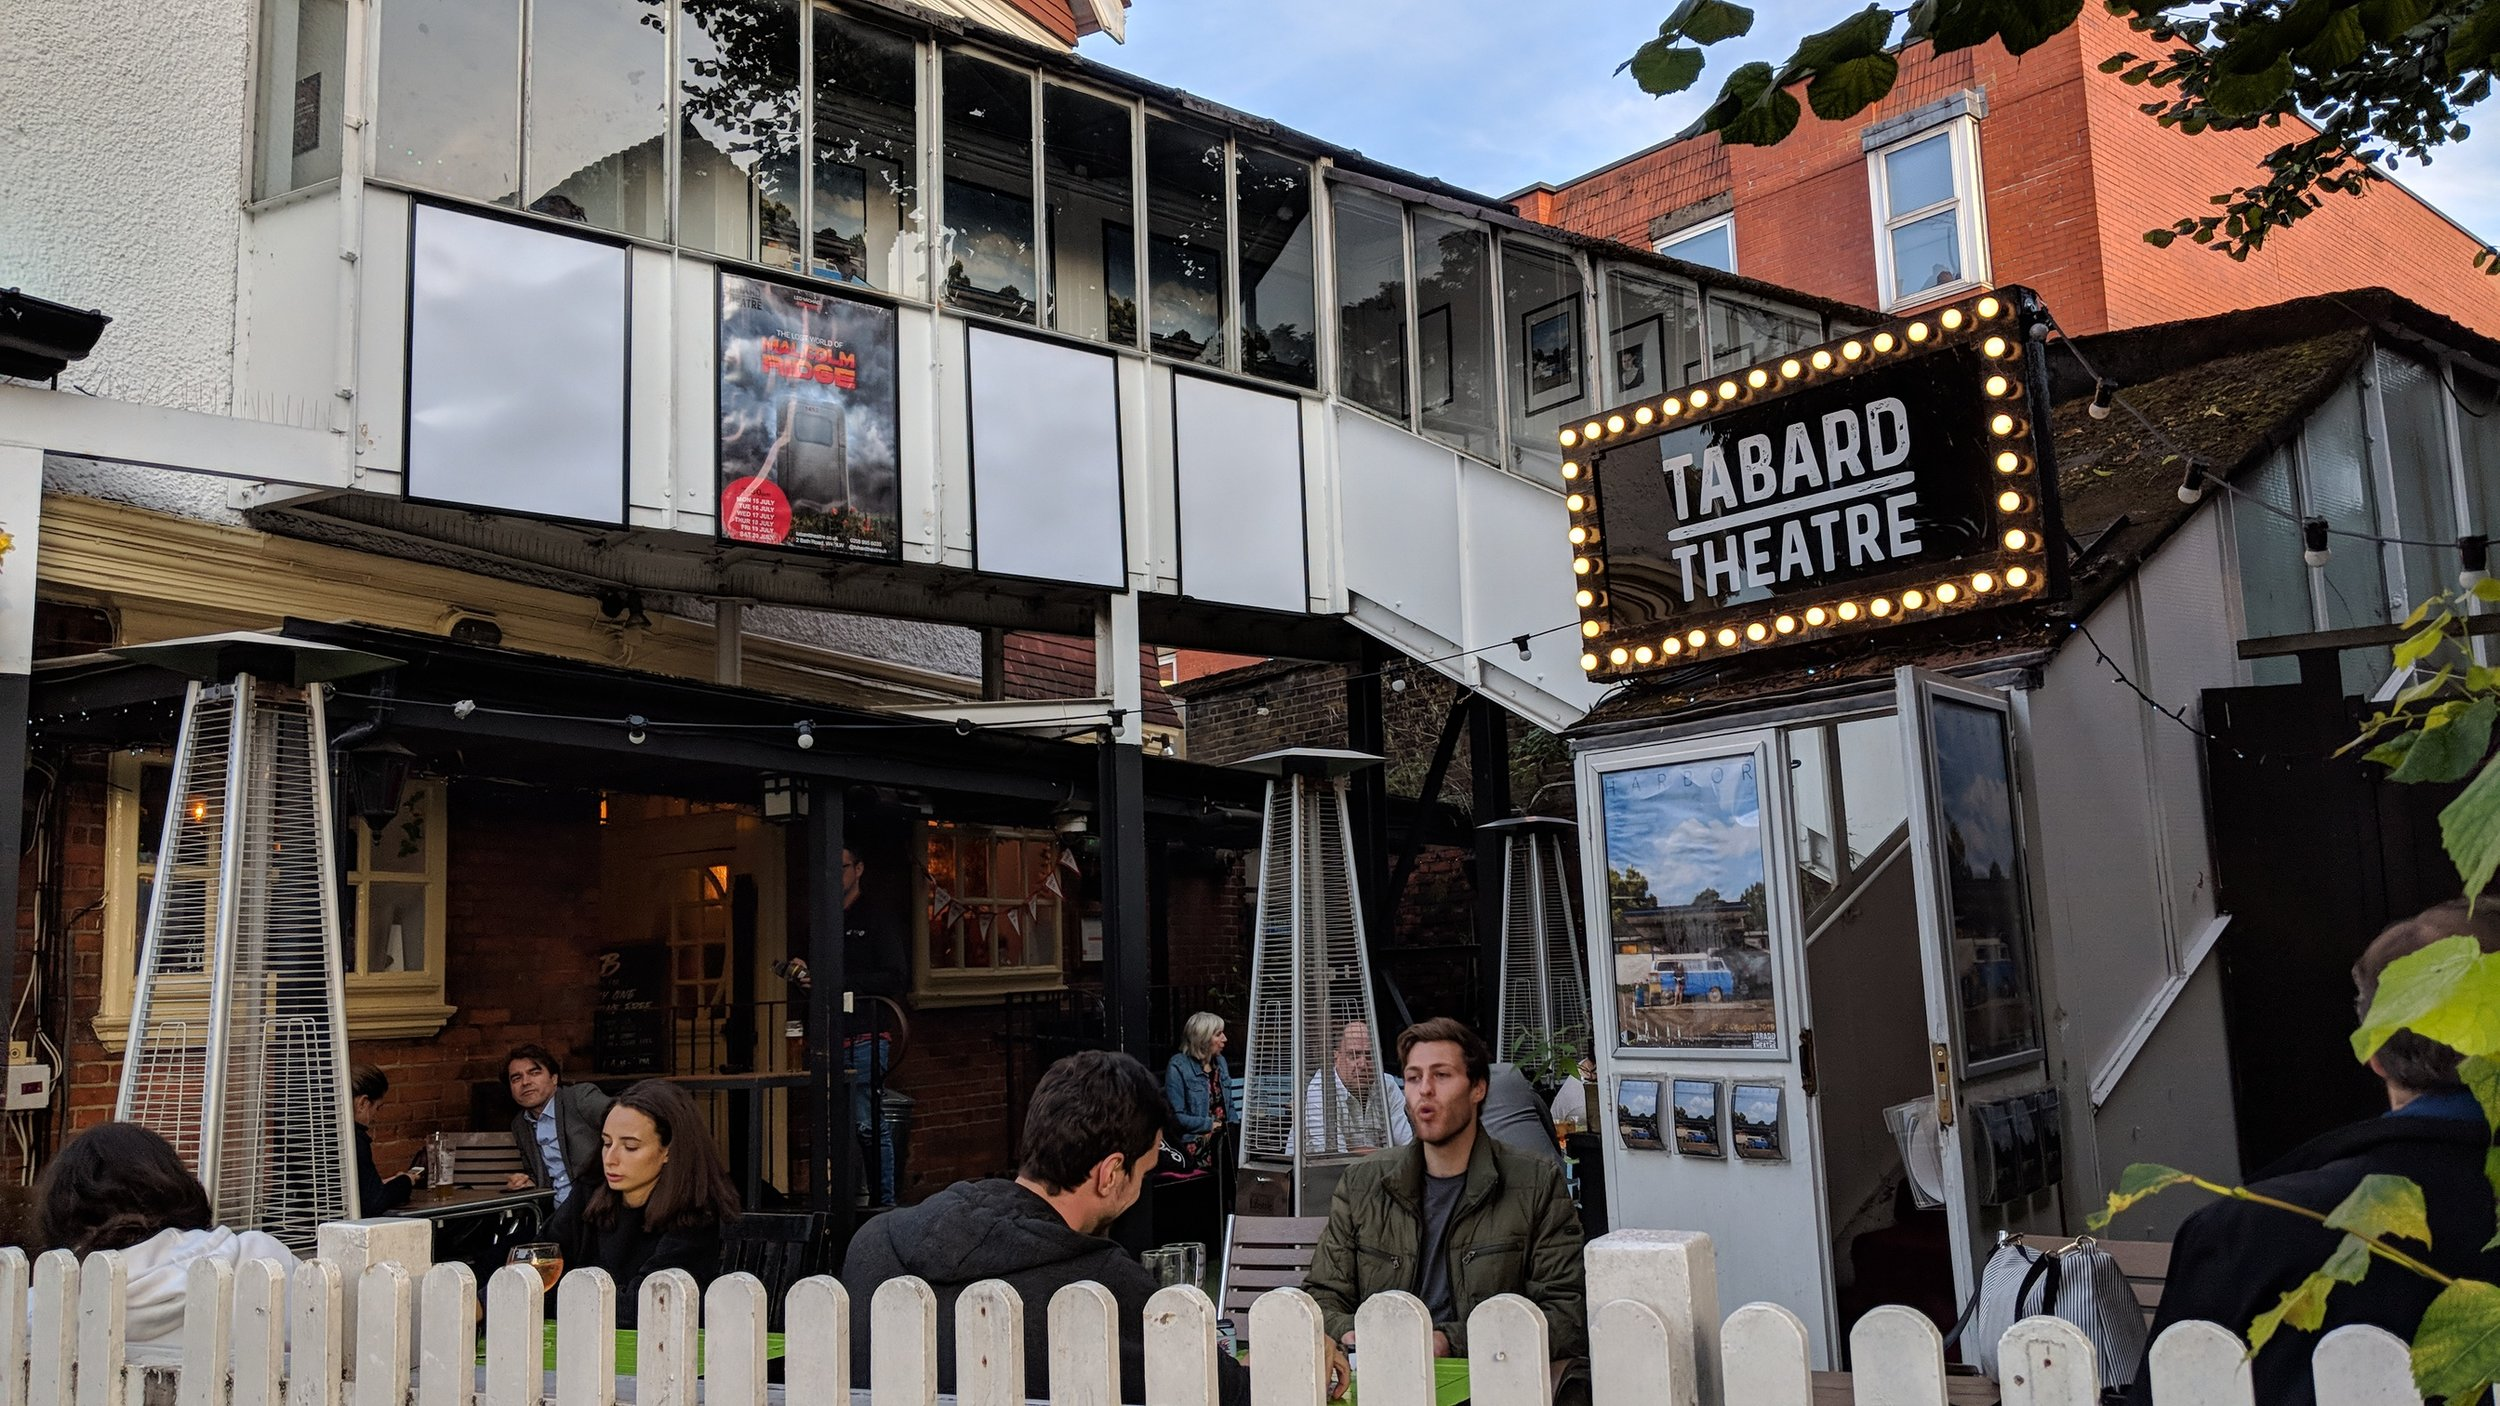 Tabard Theatre - visited 20/08/2019